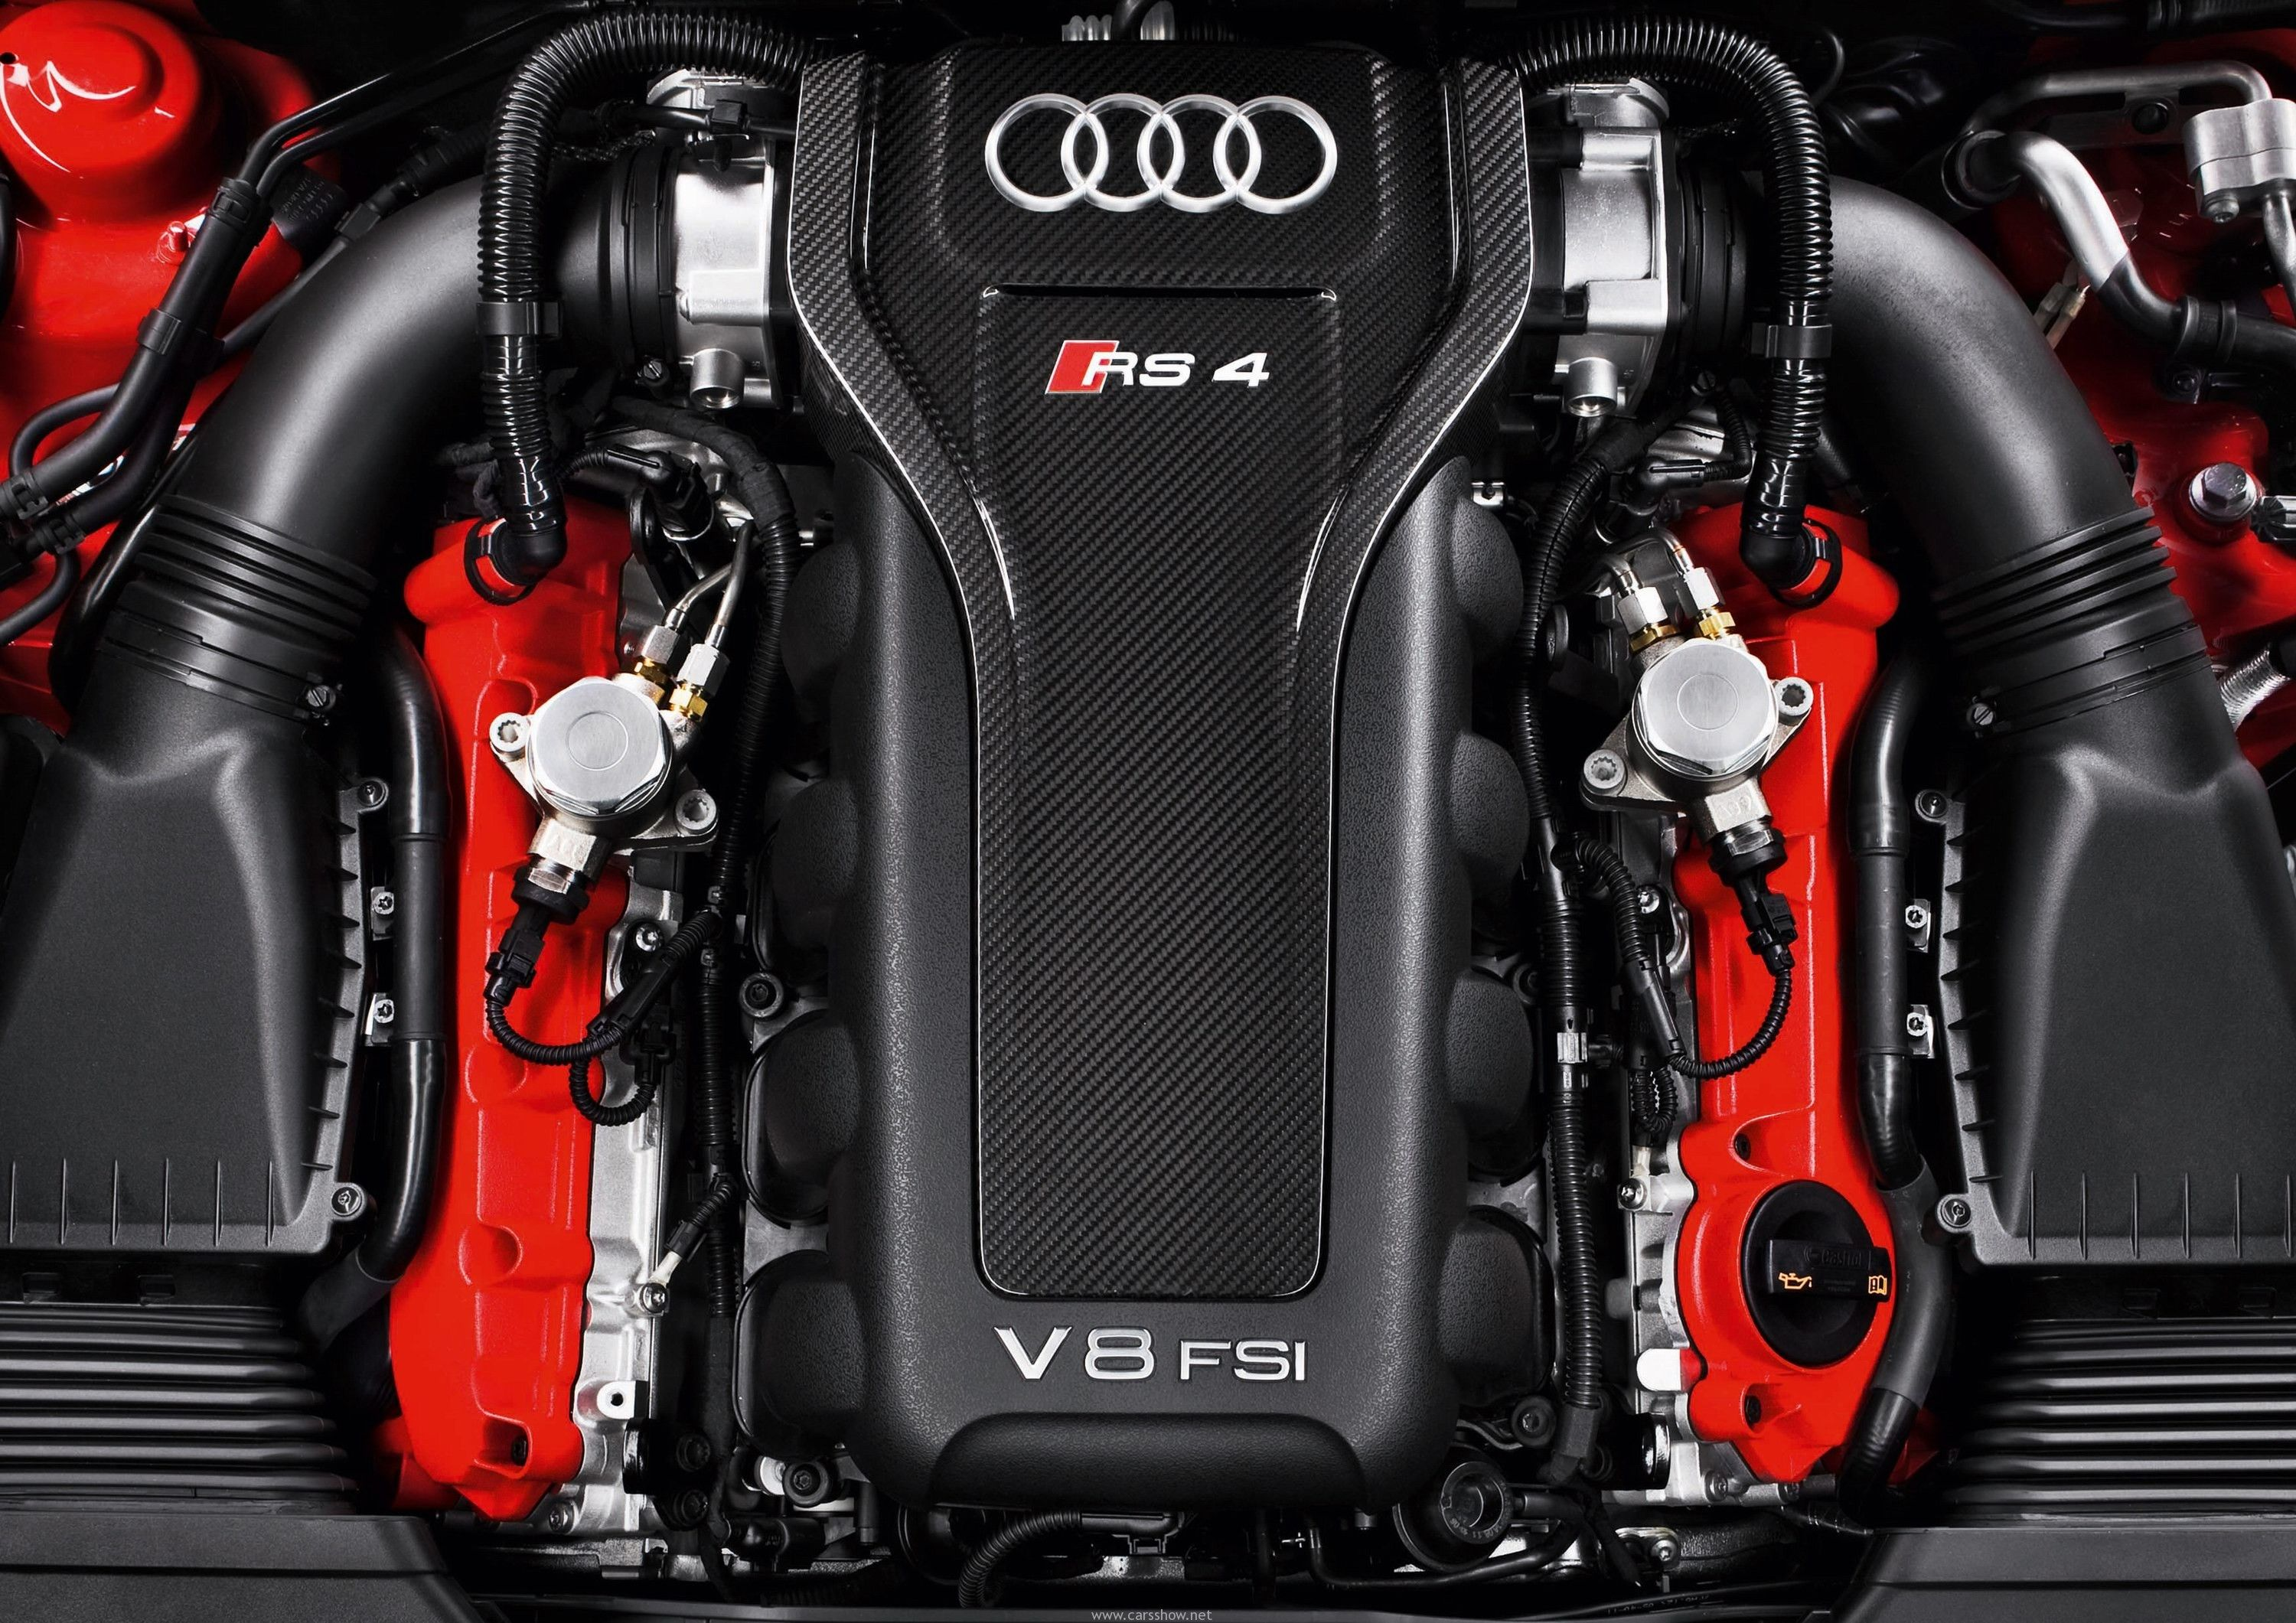 2012 Audi Rs4 Avant Engine Bay Car Wallpapers Free Download